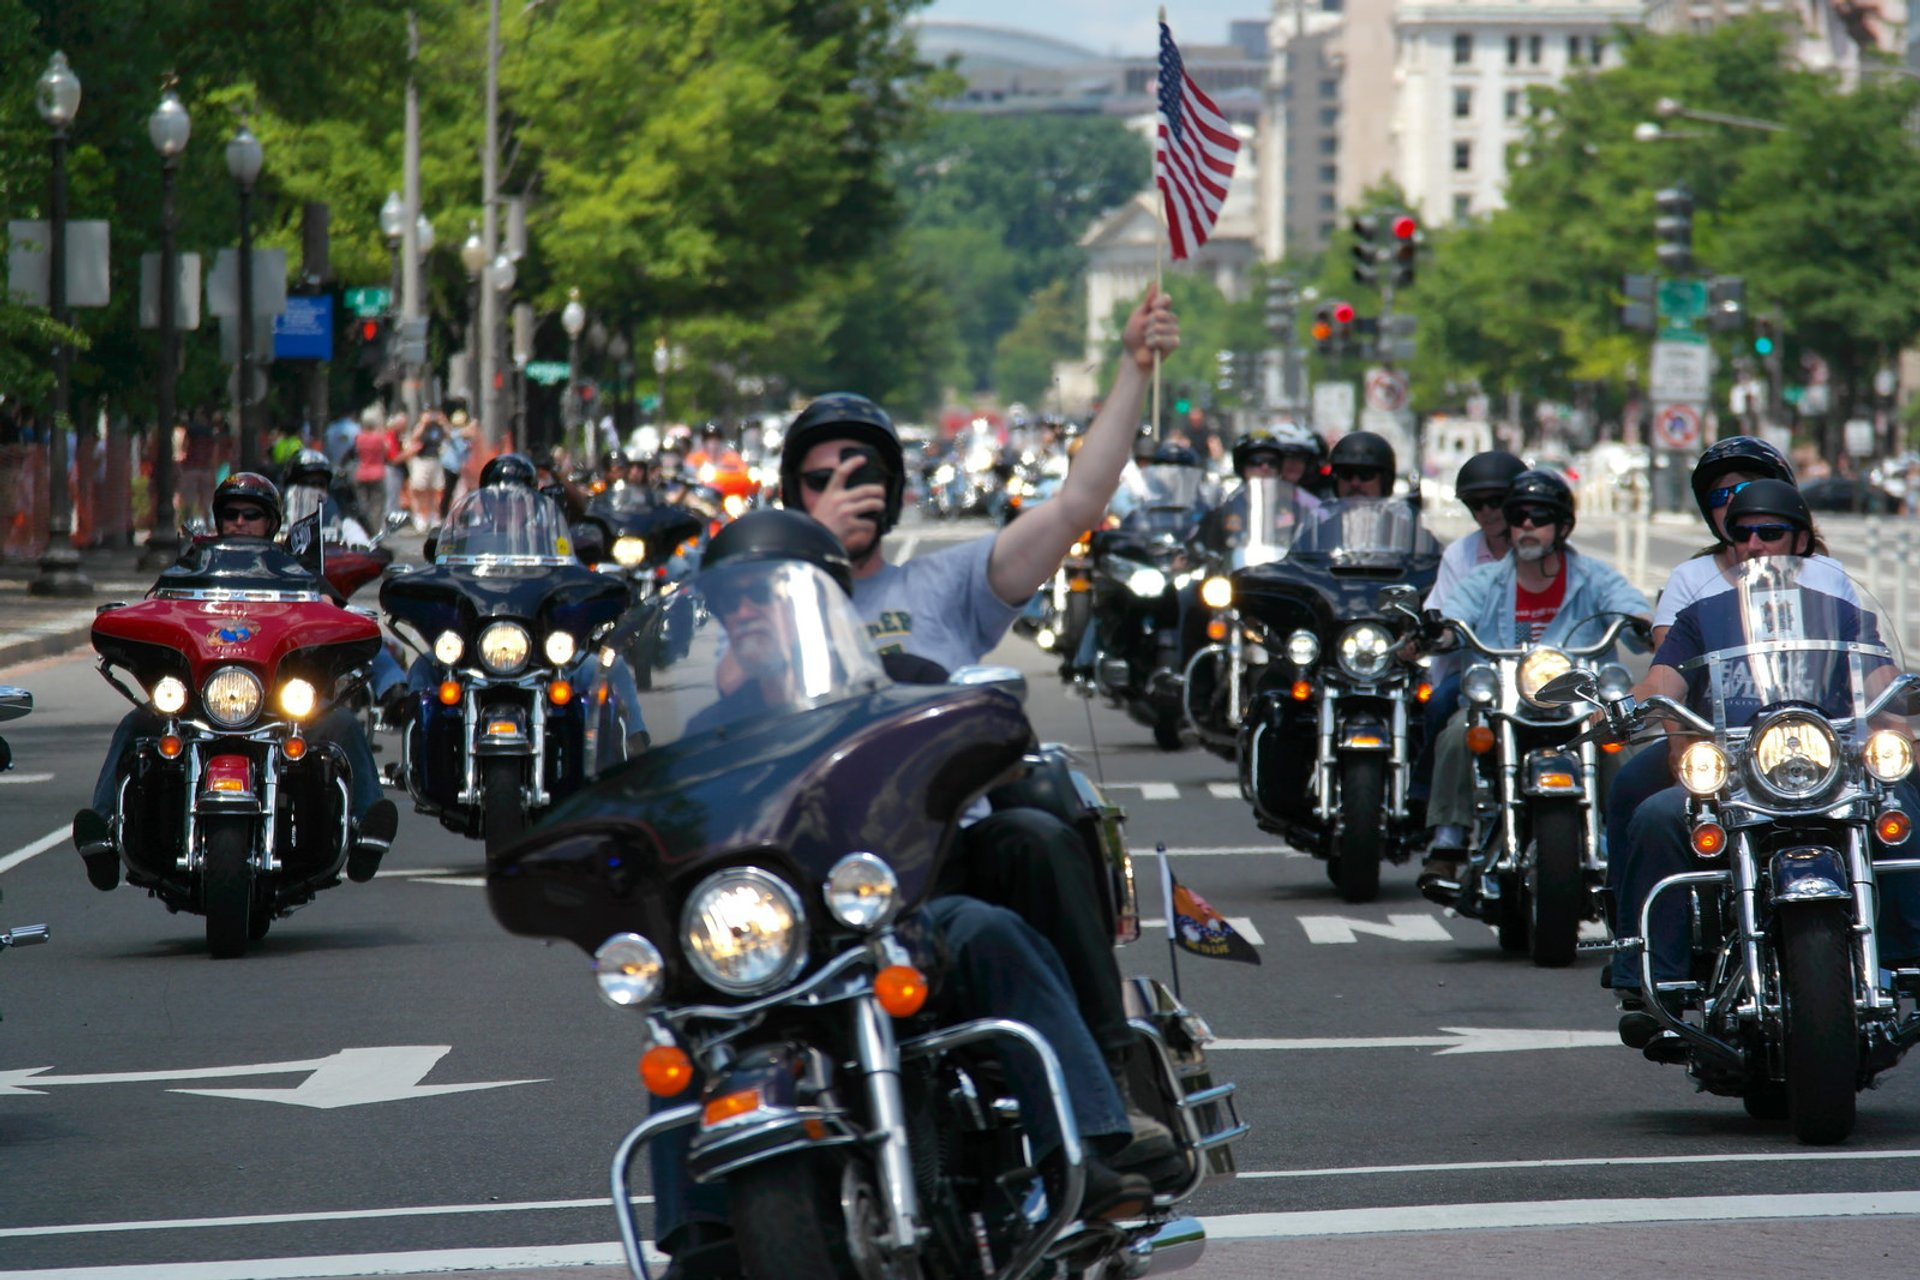 Rolling Thunder 'Ride for Freedom' in Washington, D.C. 2020 - Best Time